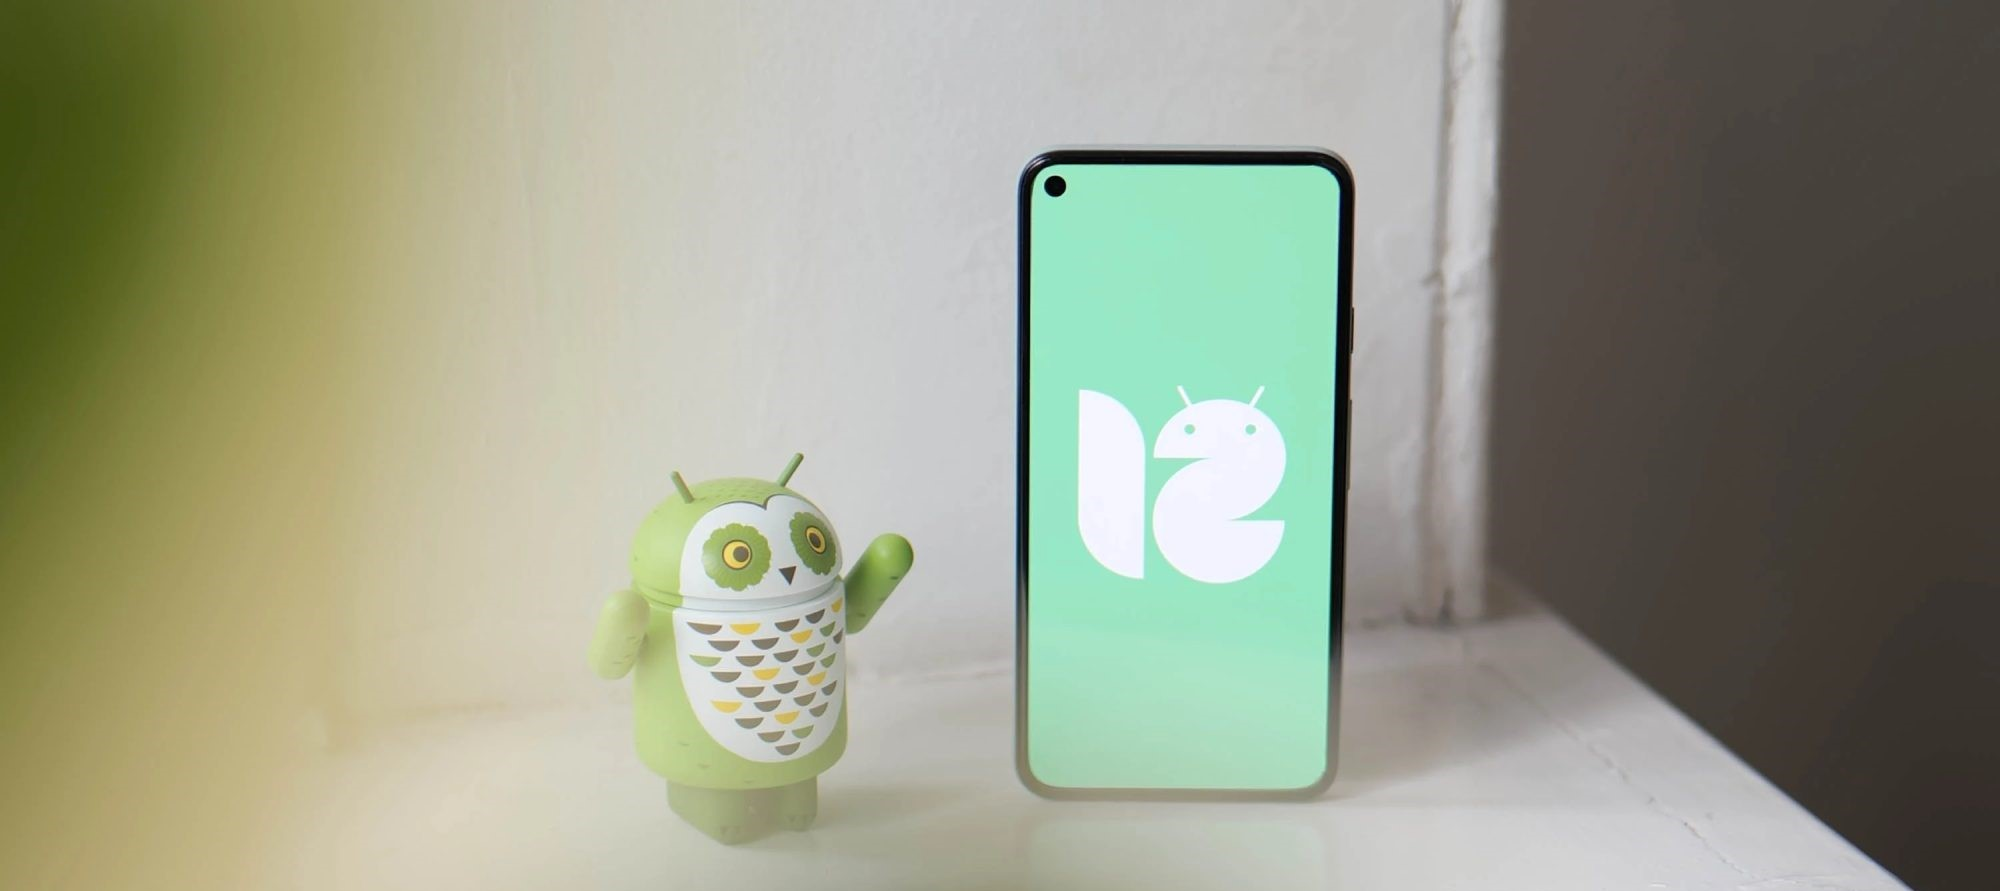 ❤ Android 12 : 20 of the best new features